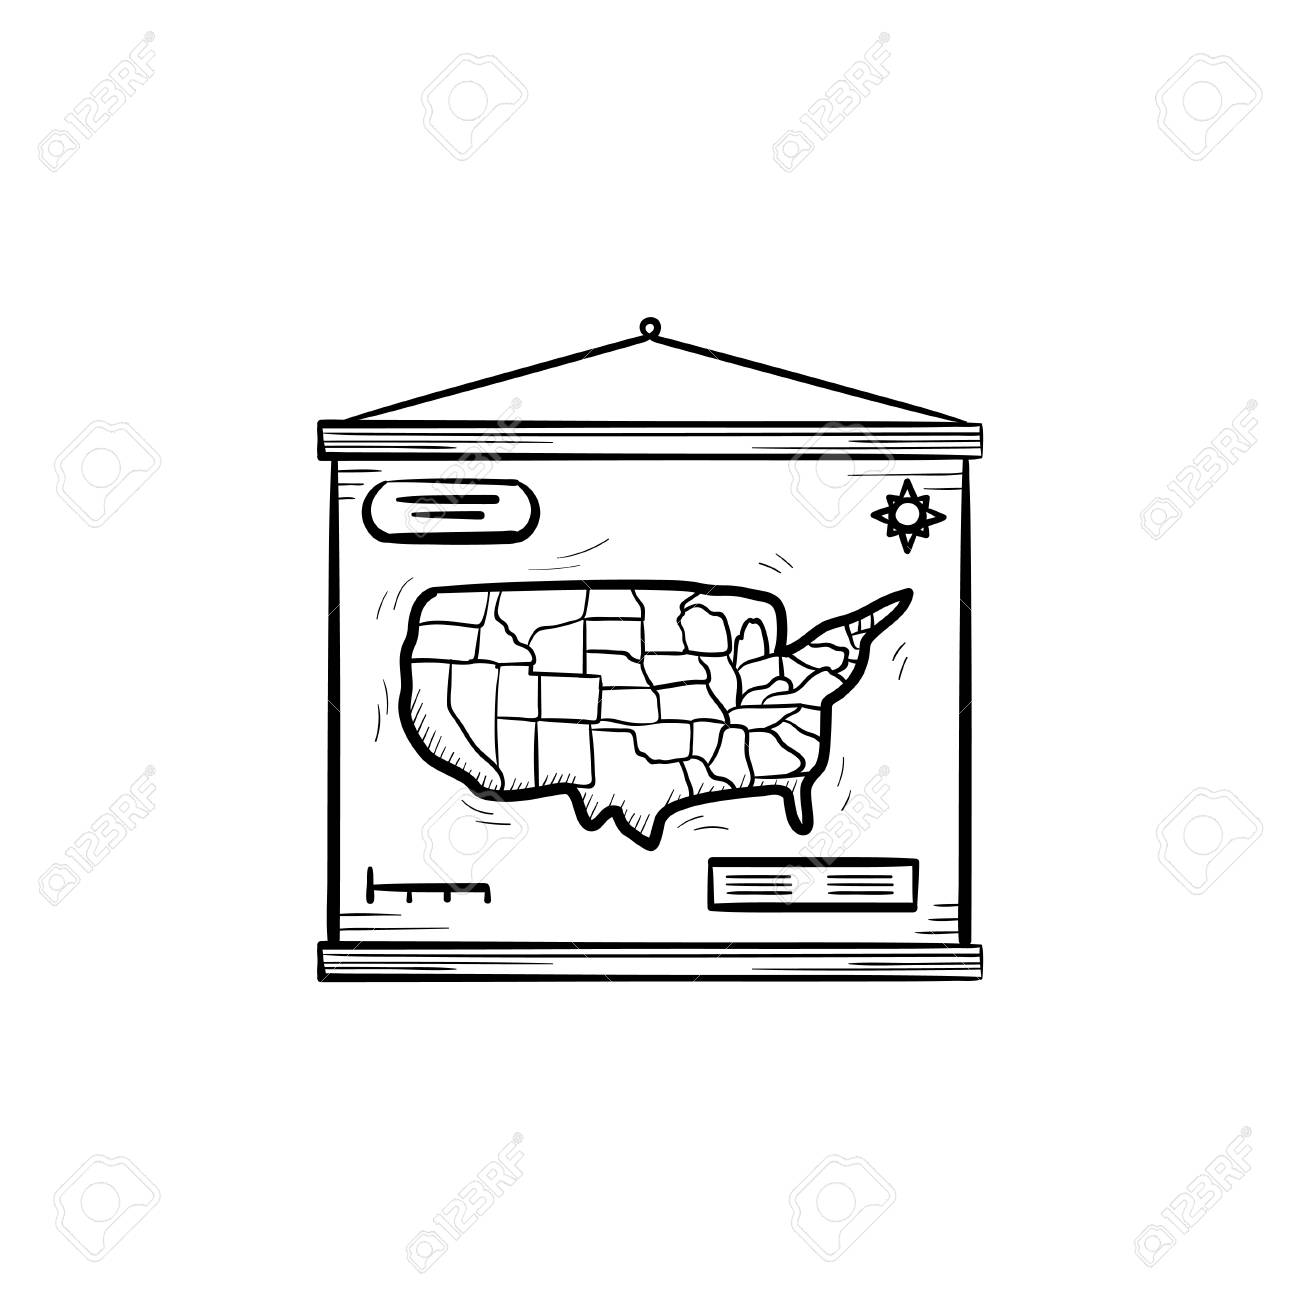 World map hand drawn outline doodle icon school world map hanging vector world map hand drawn outline doodle icon school world map hanging on the wall vector sketch illustration for print web mobile and infographics gumiabroncs Images